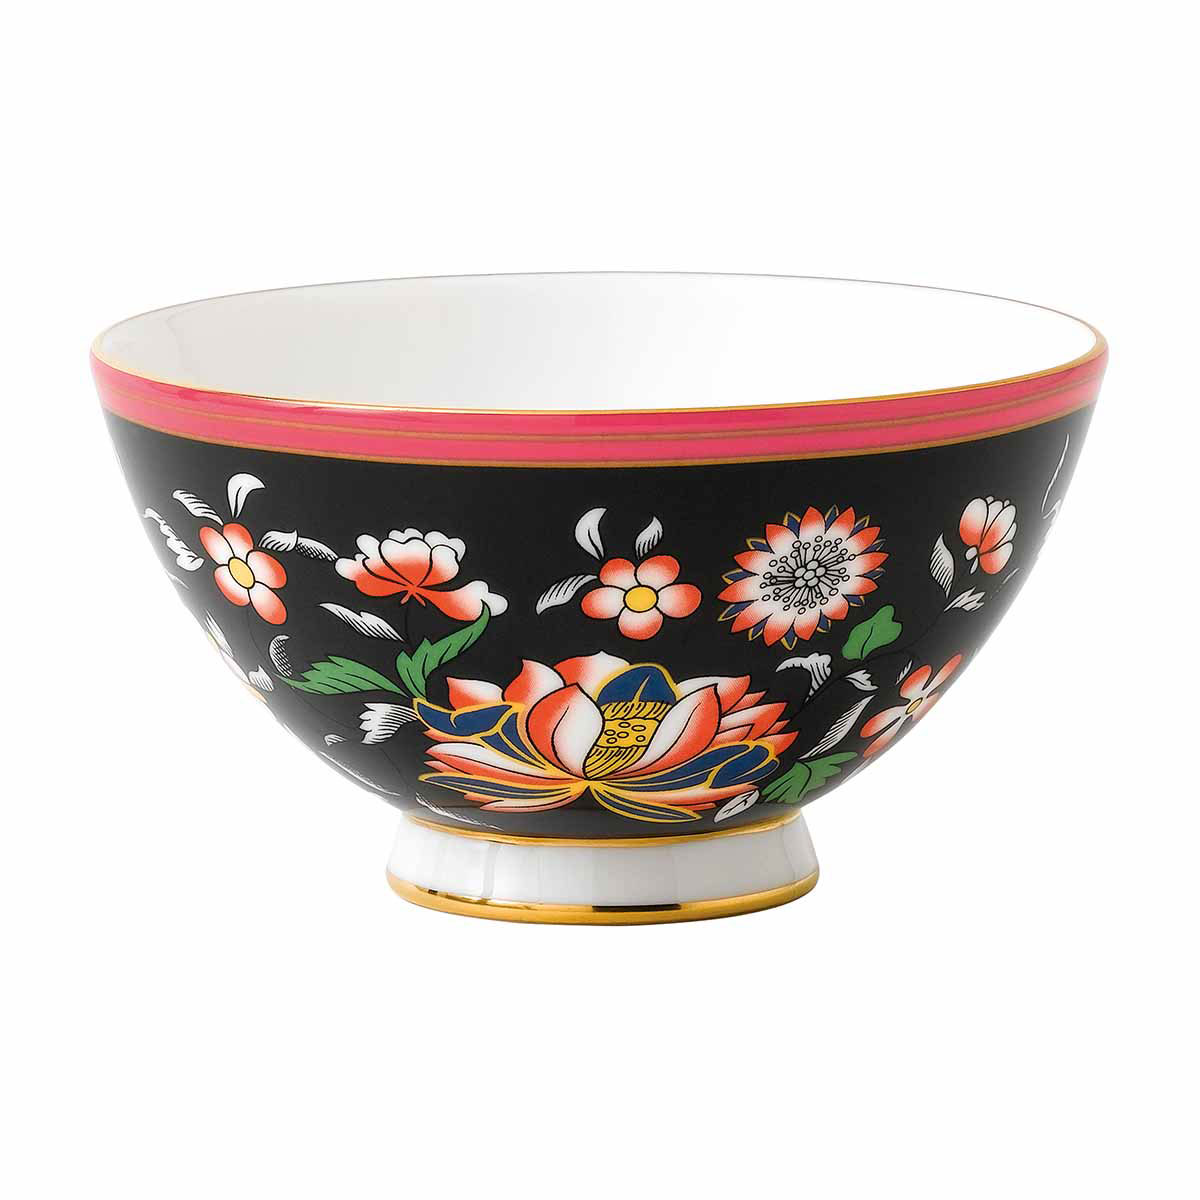 Wedgwood Wonderlust Oriental Jewel Bowl